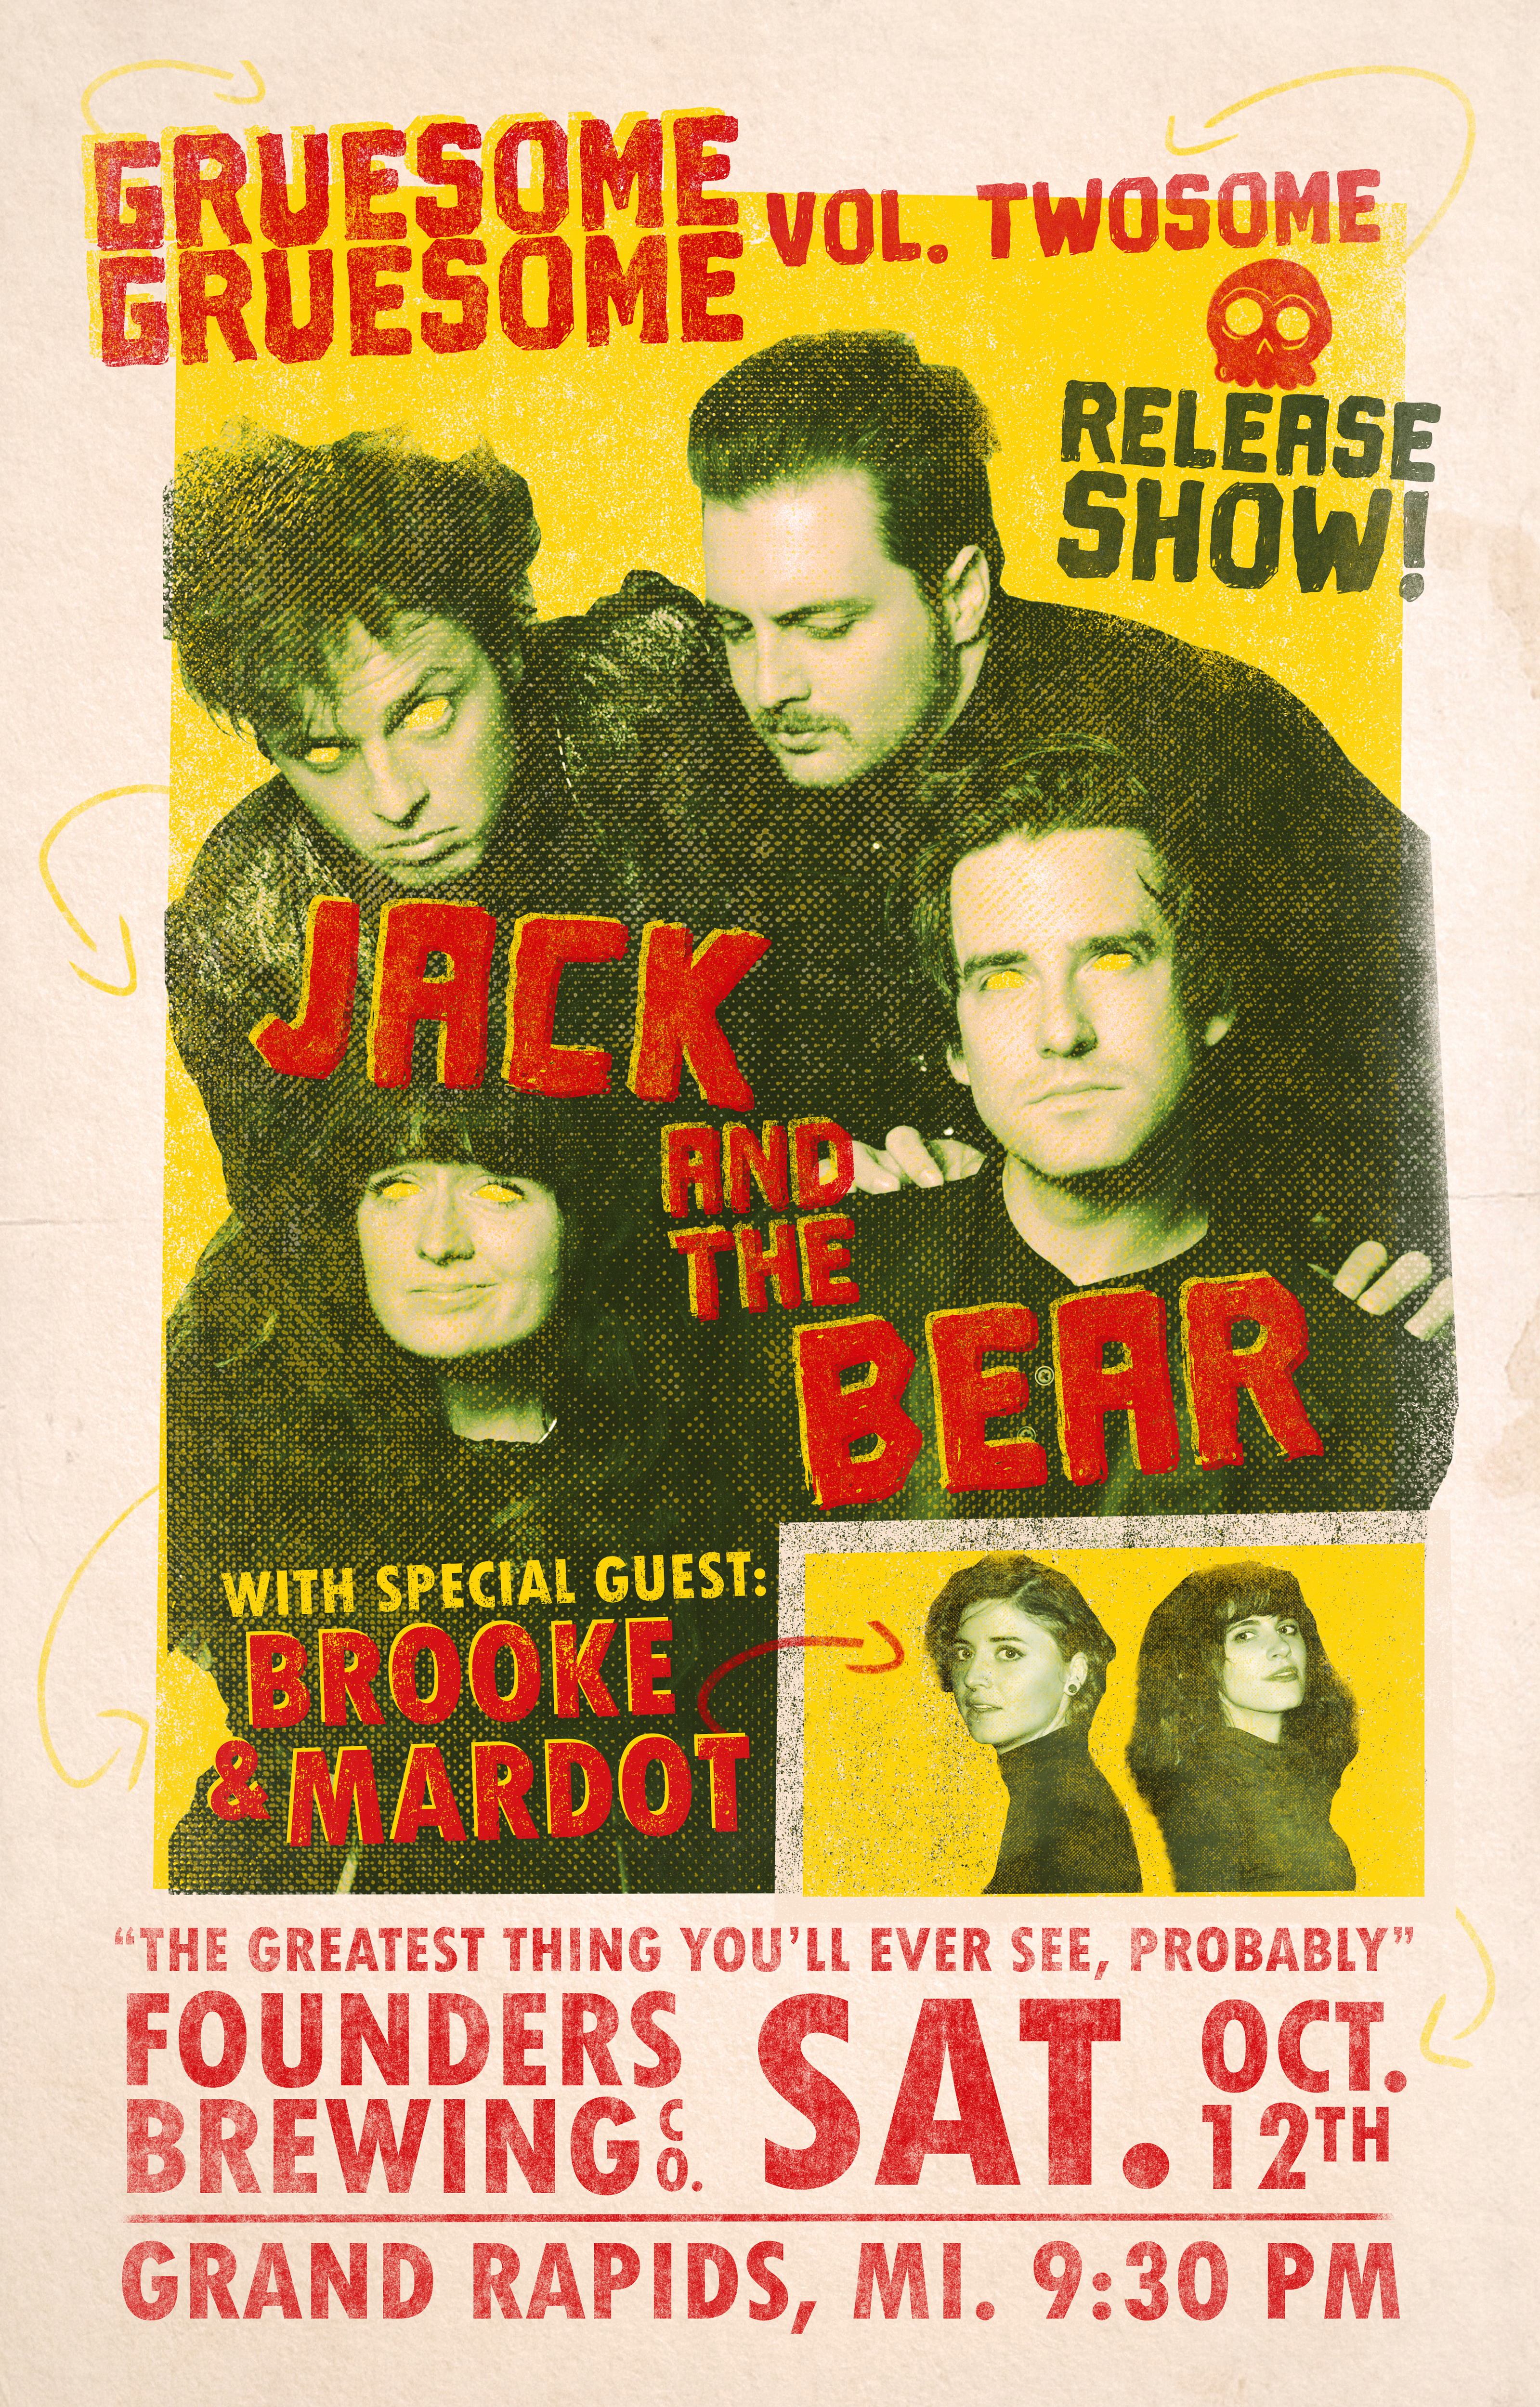 Jack and the Bear event poster hosted by Founders Brewing Co.